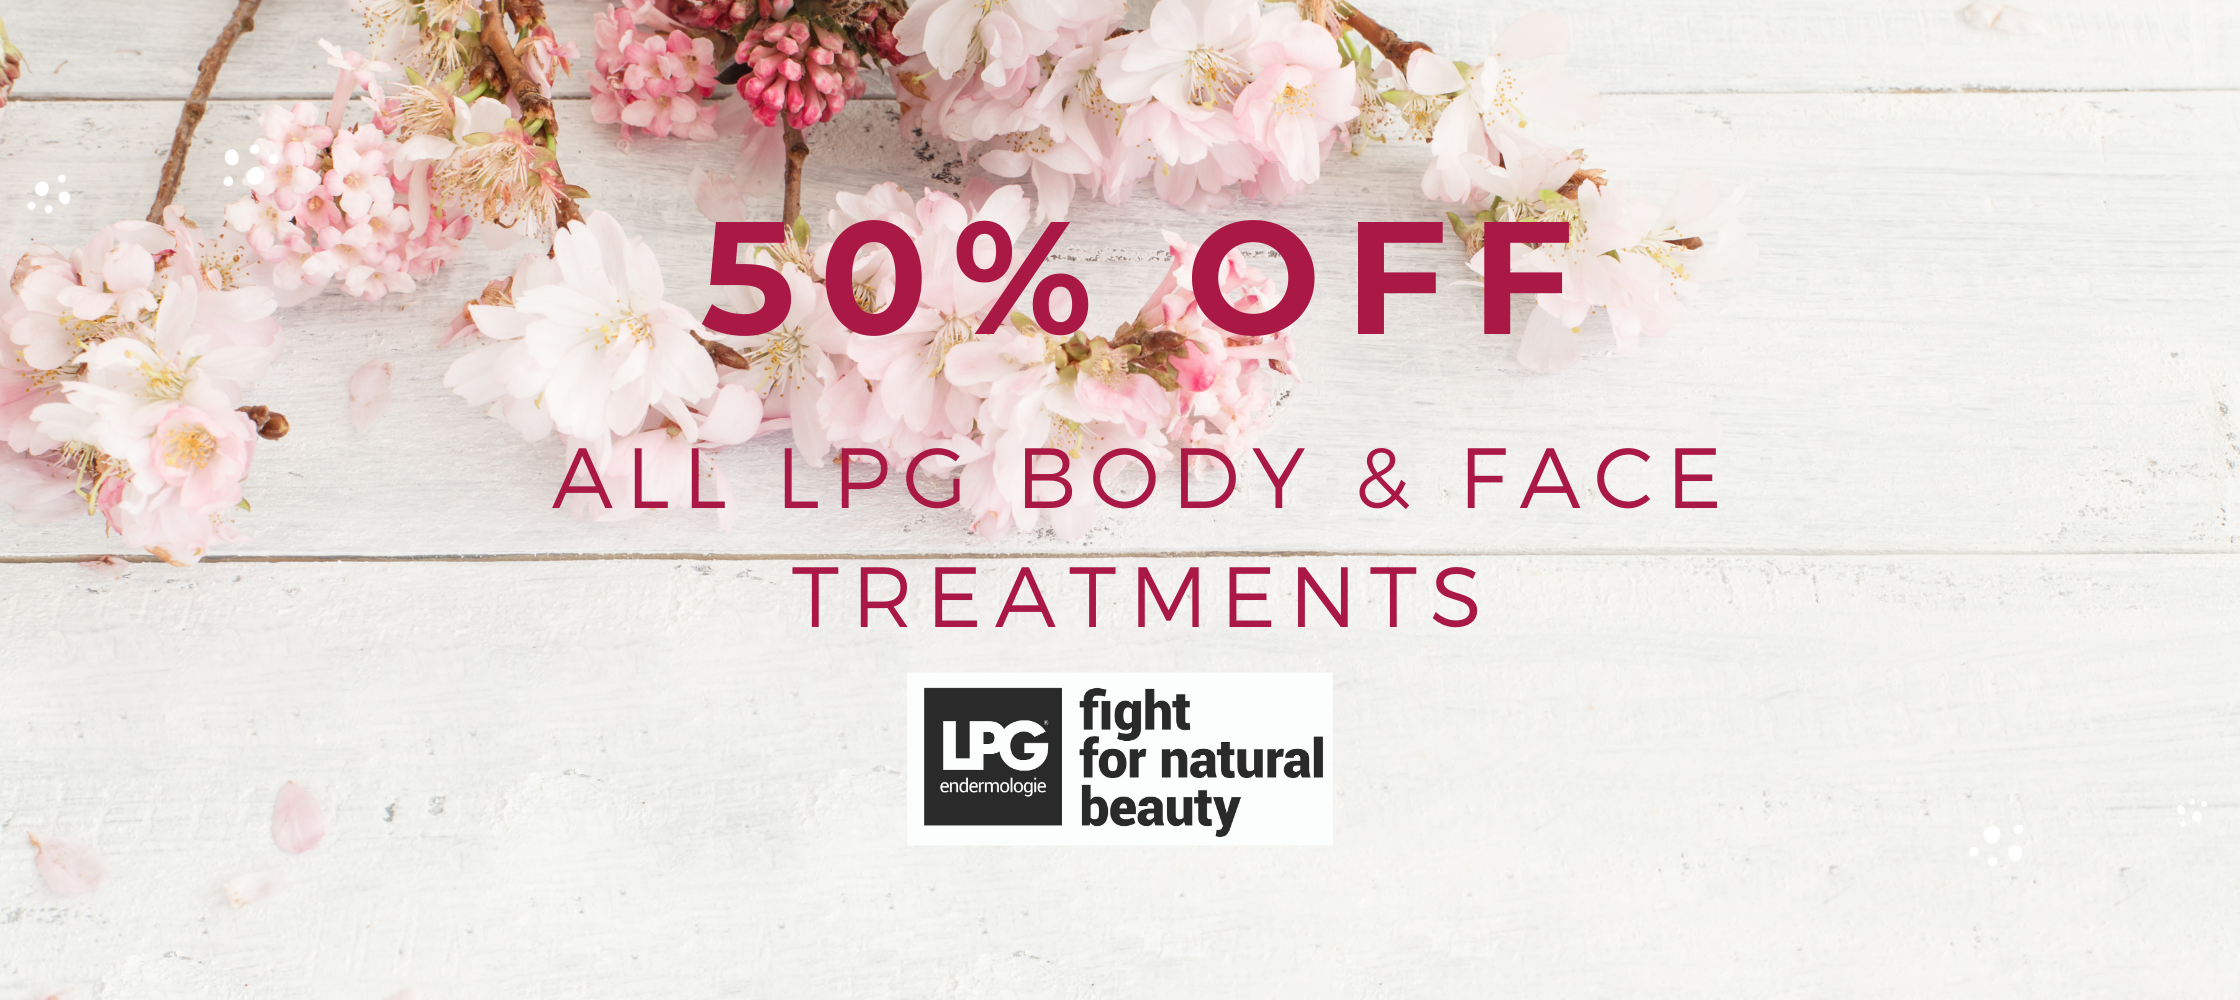 welcome spring offer LPG